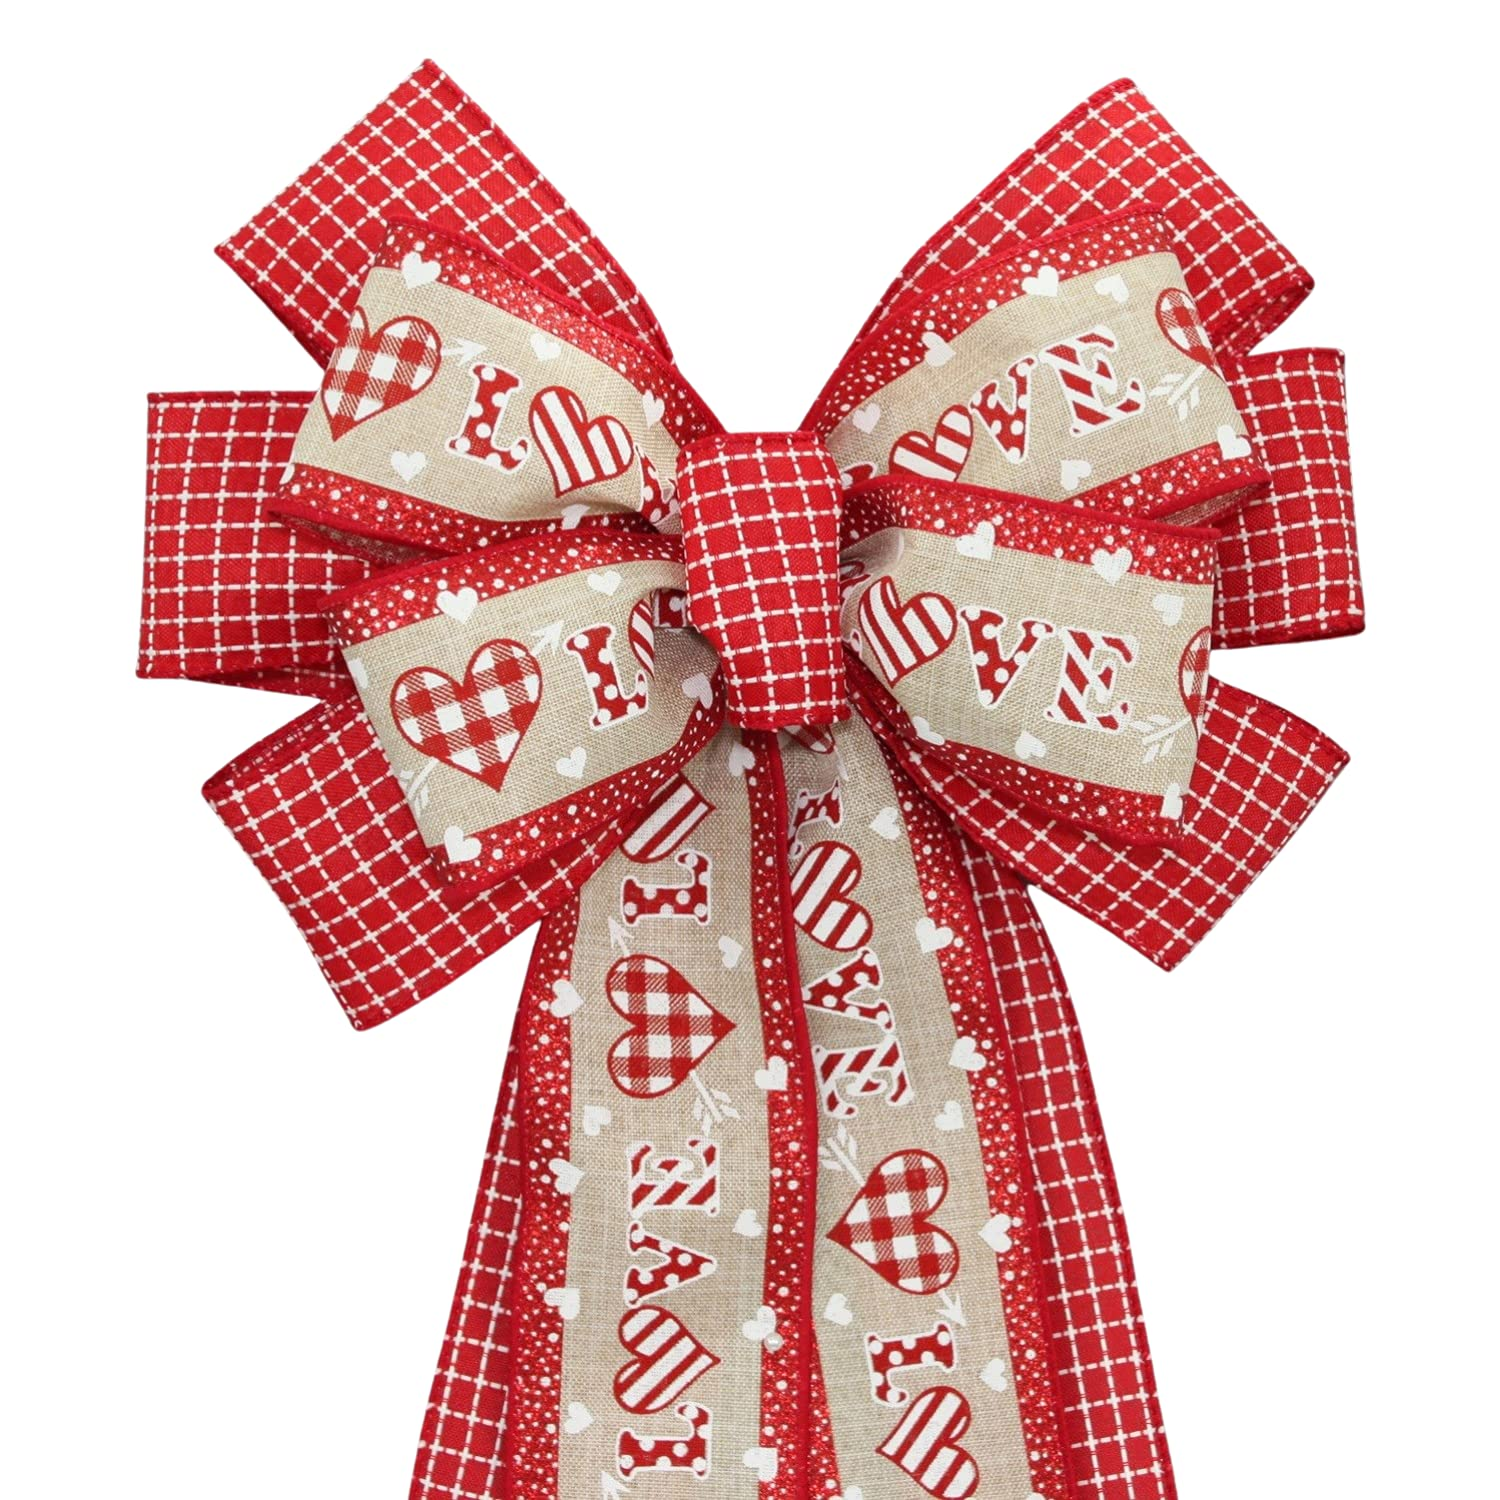 shipfree Patterned Love Valentine's Day San Diego Mall Bow Wreath